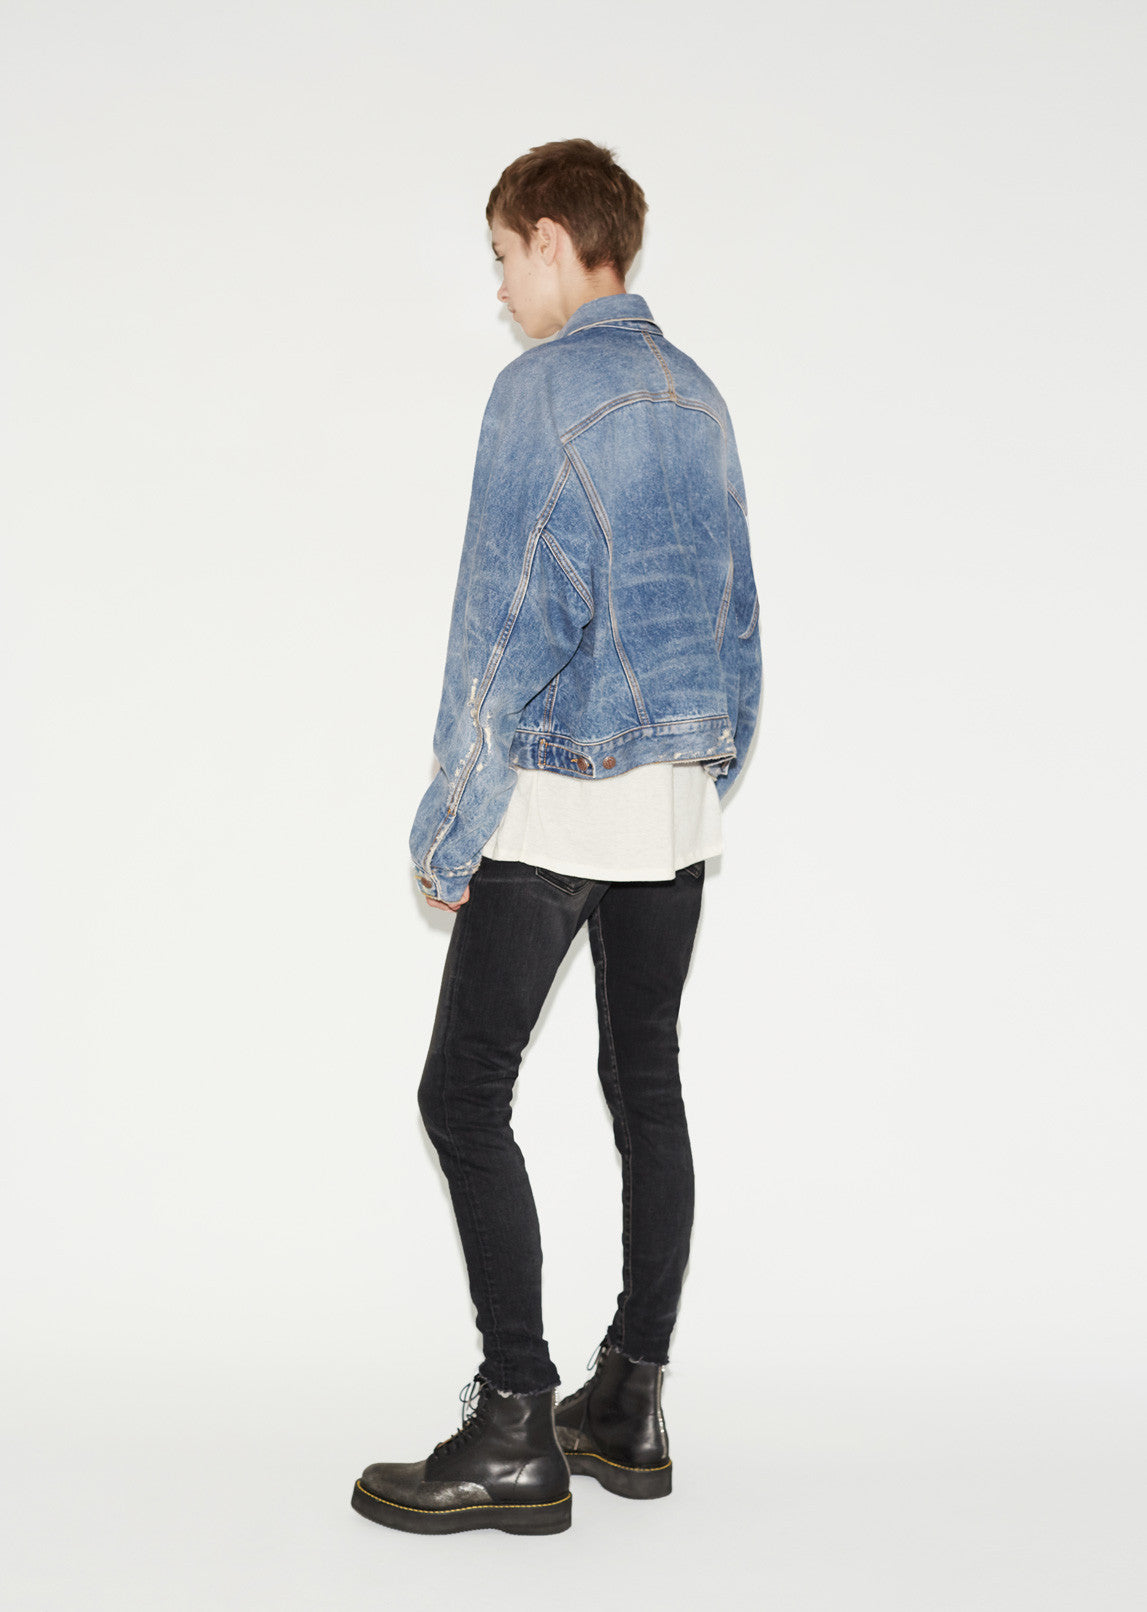 Raglan Trucker Denim Jacket